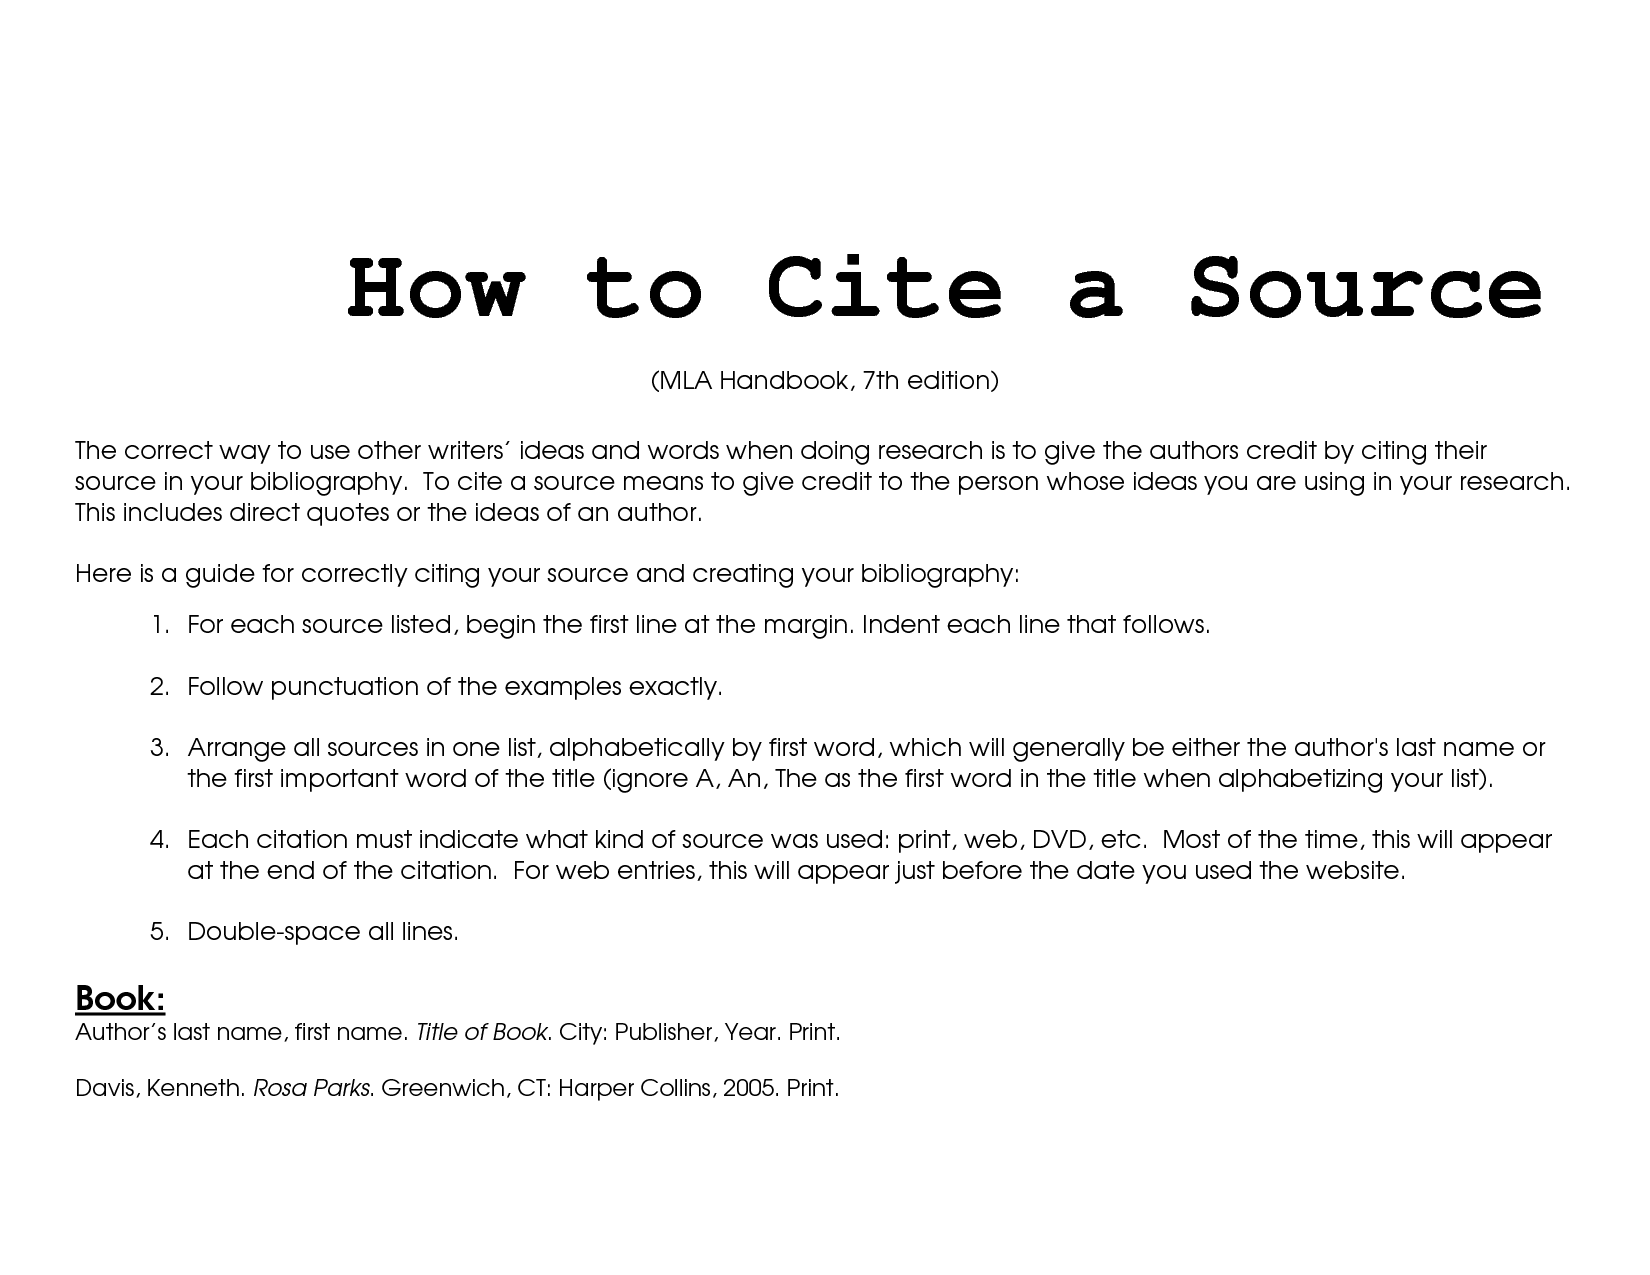 citing sources in mla style enc1102 libraryinstruction cite your sources mla retrieved from docstoc com docs